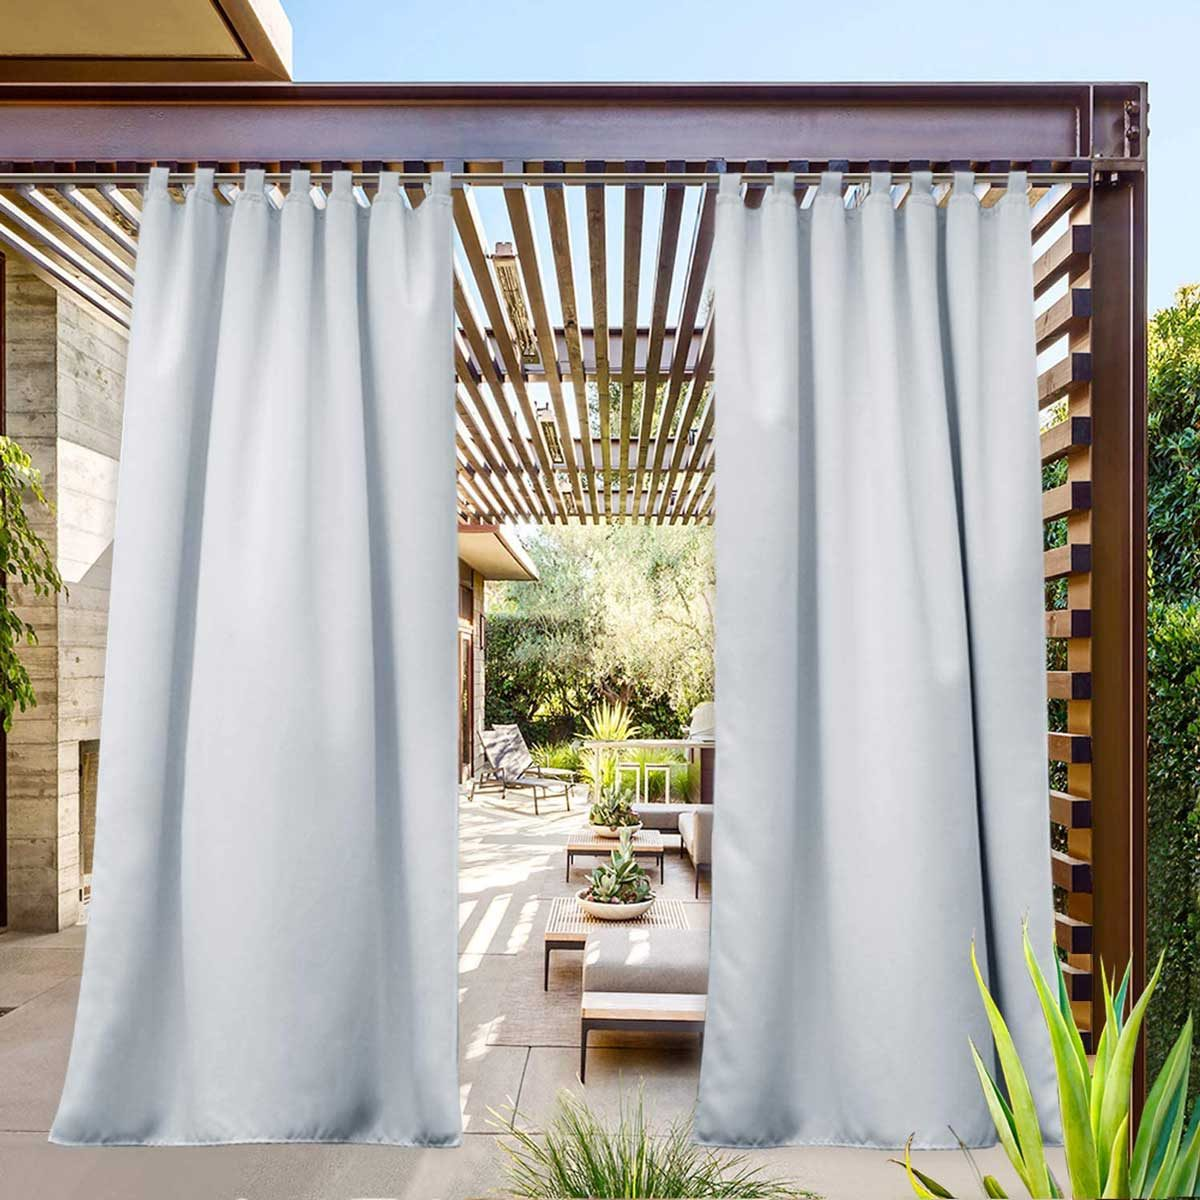 Outdoor curtains